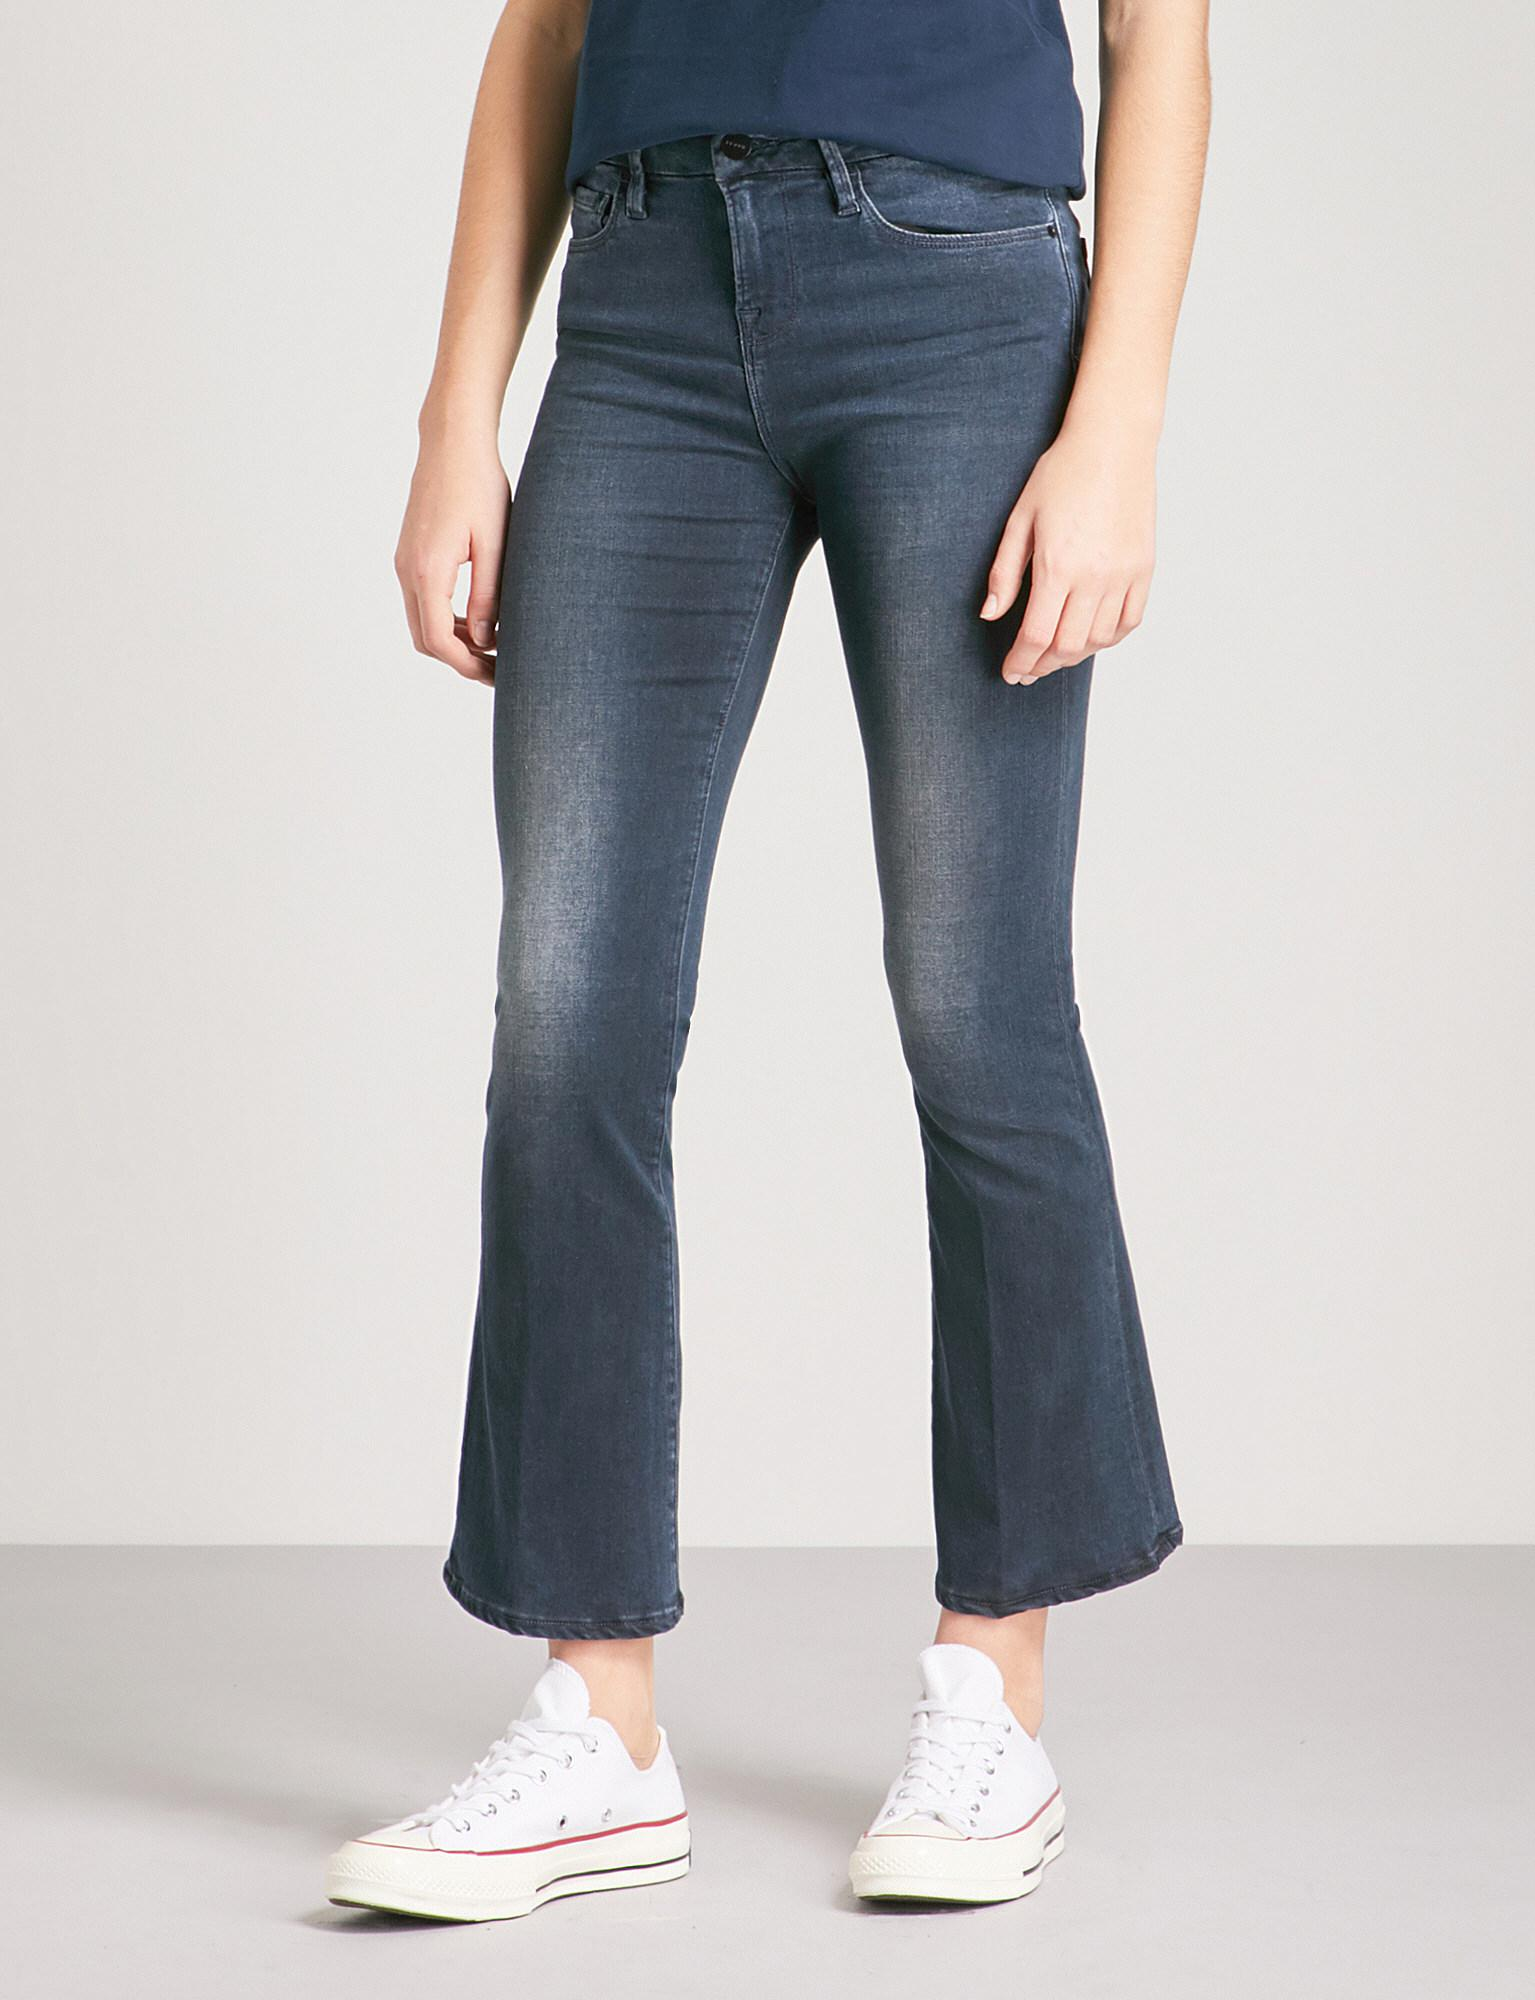 Sale For Nice Le Crop Mini Boot Frayed Mid-rise Jeans - Mid denim Frame Denim Top Quality Cheap Online Cheap Sale 100% Authentic Free Shipping Cheapest Price 5kQcxZxrM